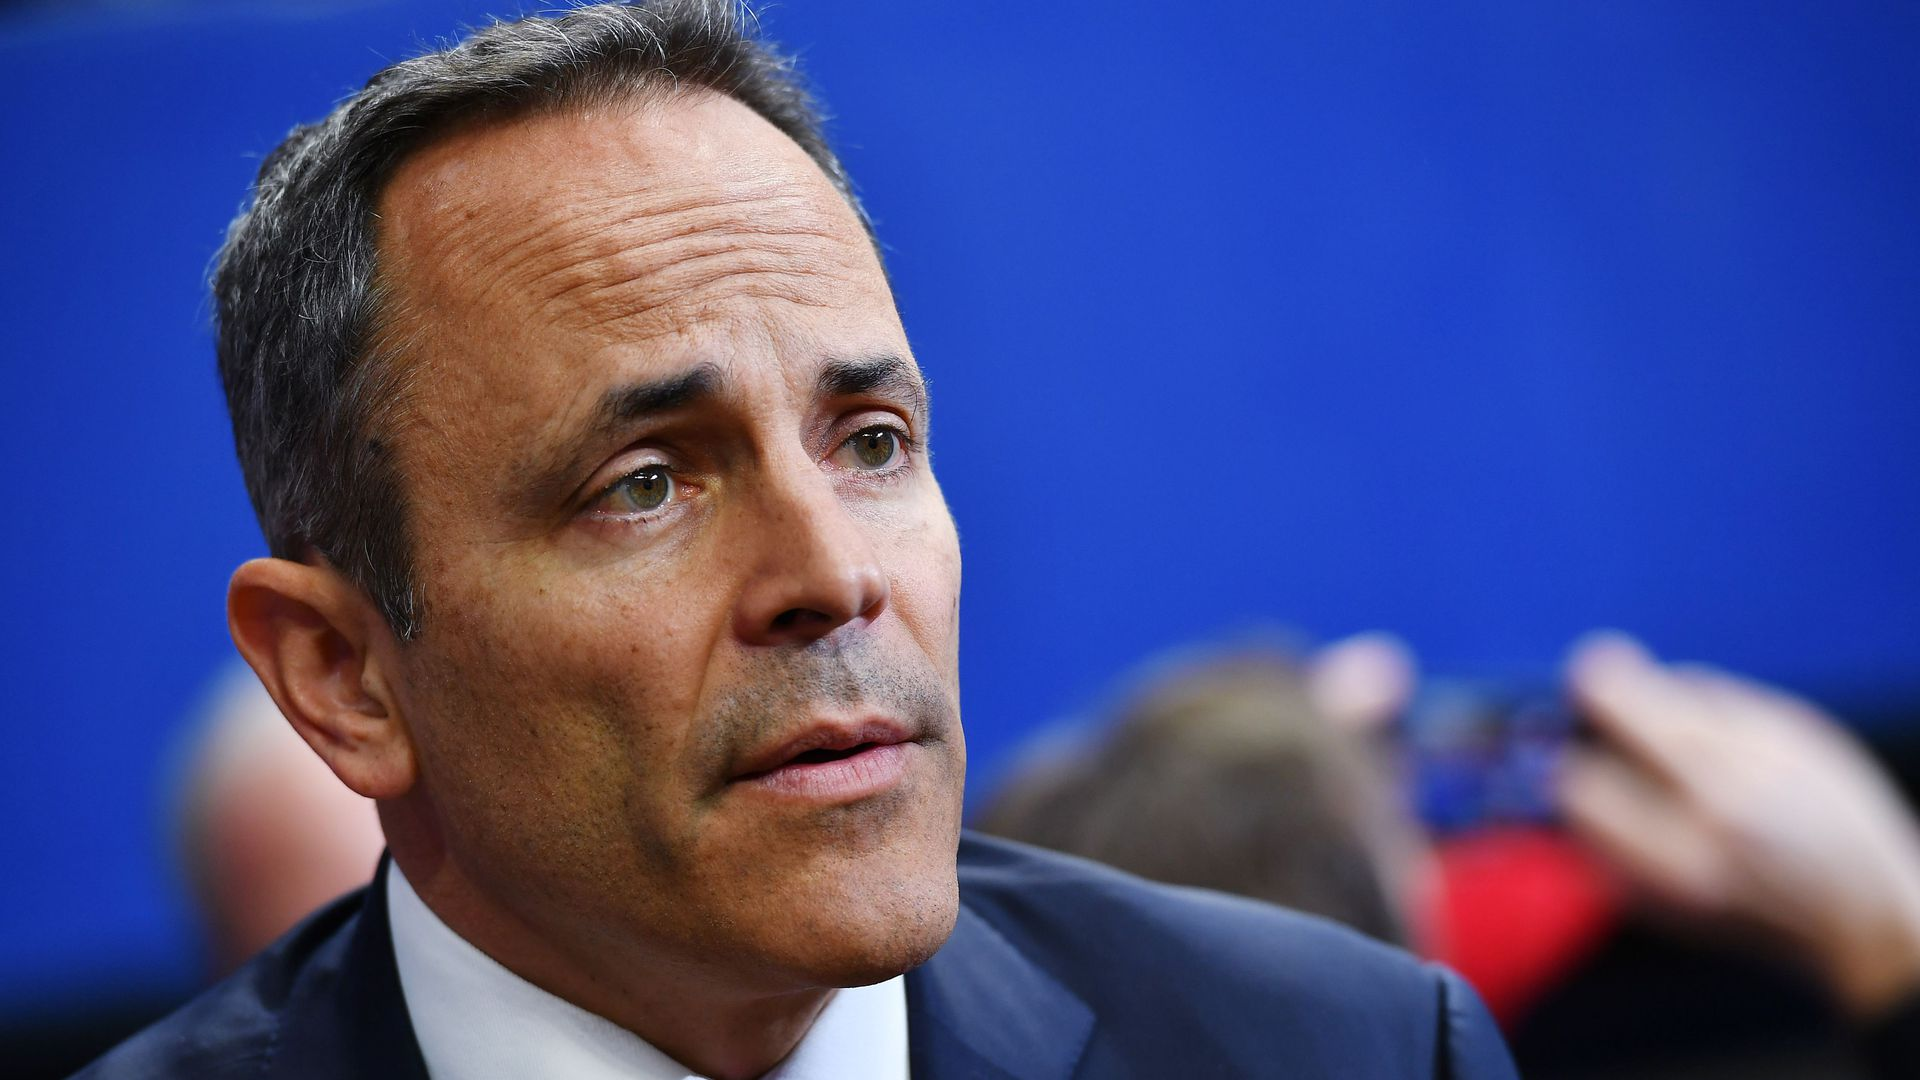 This image is a close up of Matt Bevin